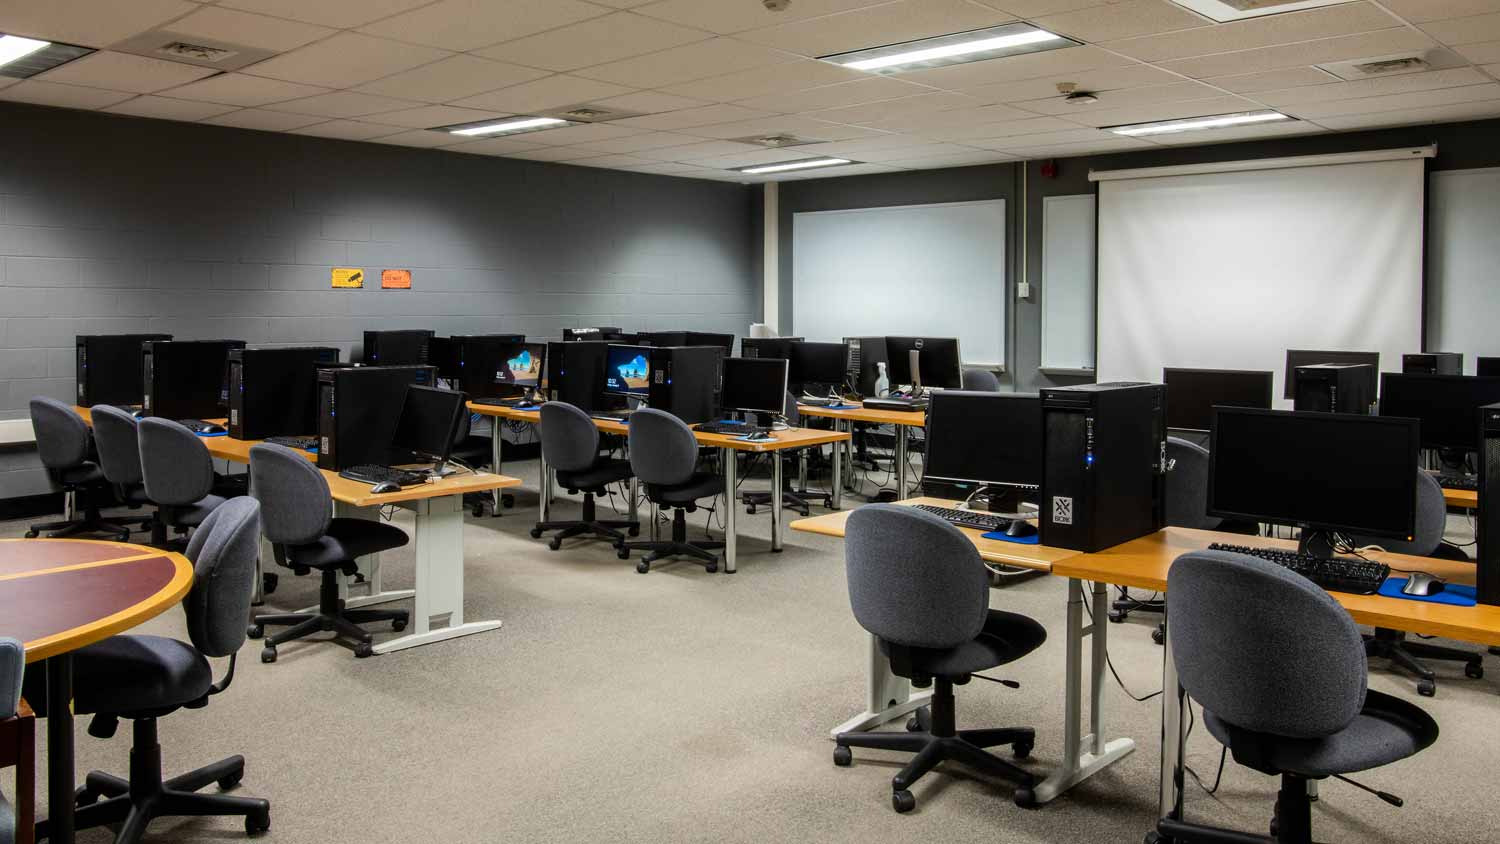 Interior of the Gannett multimedia classroom.